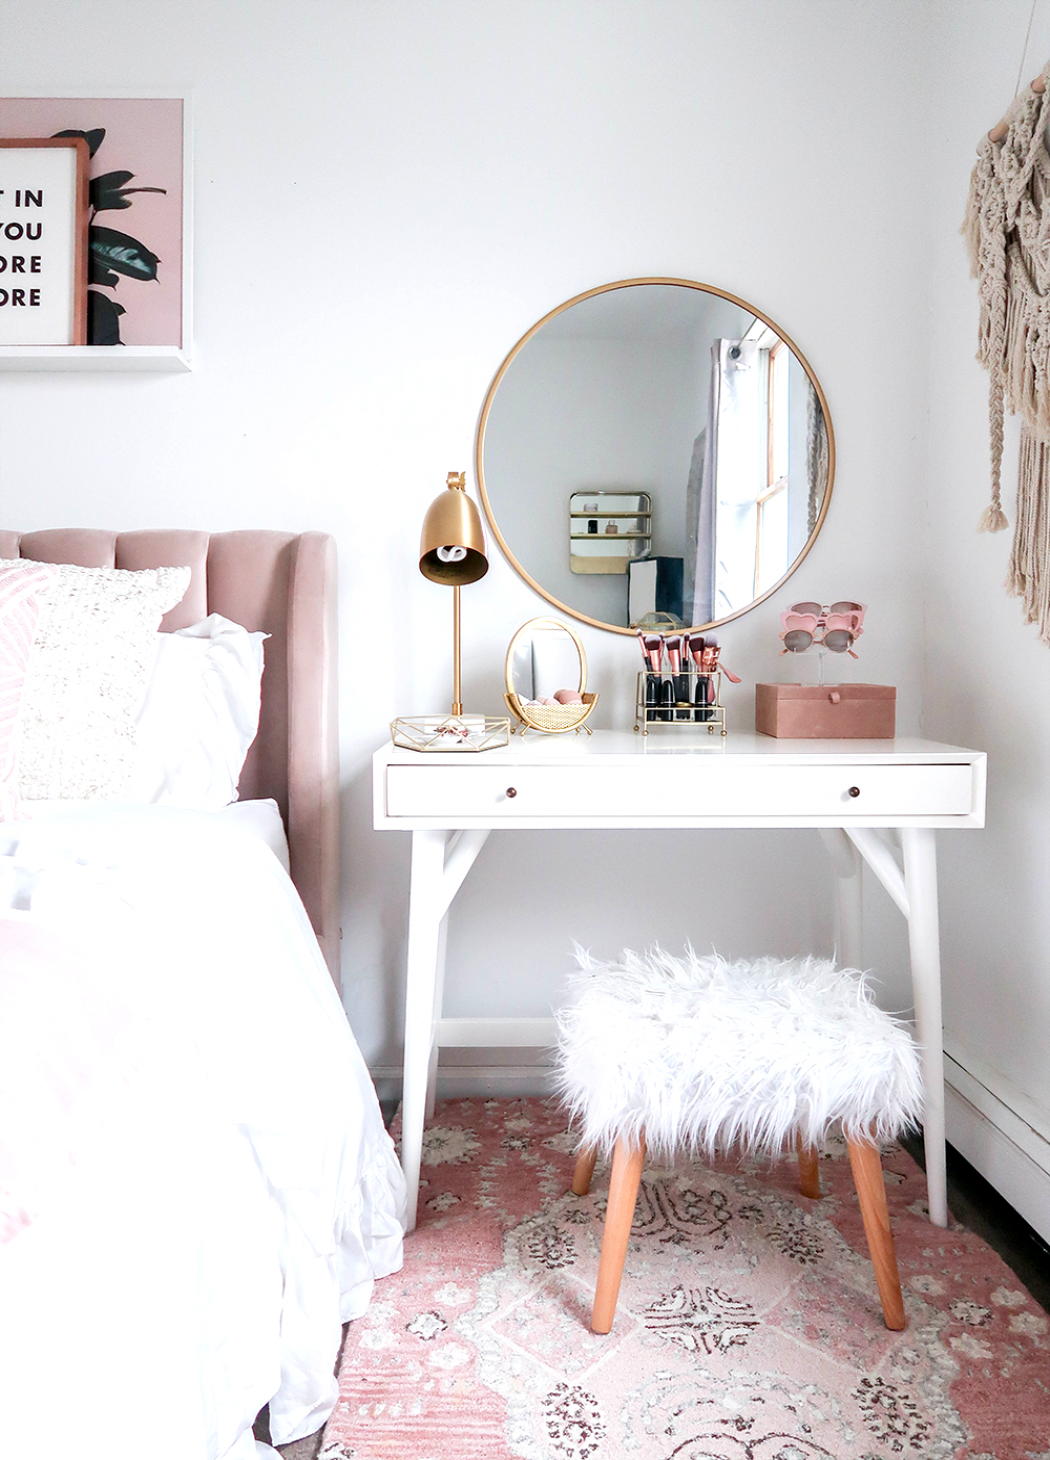 Styling A Vanity In A Small Space | Small Space | Vanity As a Nightstand | Blush and White Vanity | Blush and White Bedroom | Makeup Organization | Vanity Organization| Money Can Buy Lipstick #Bedroom